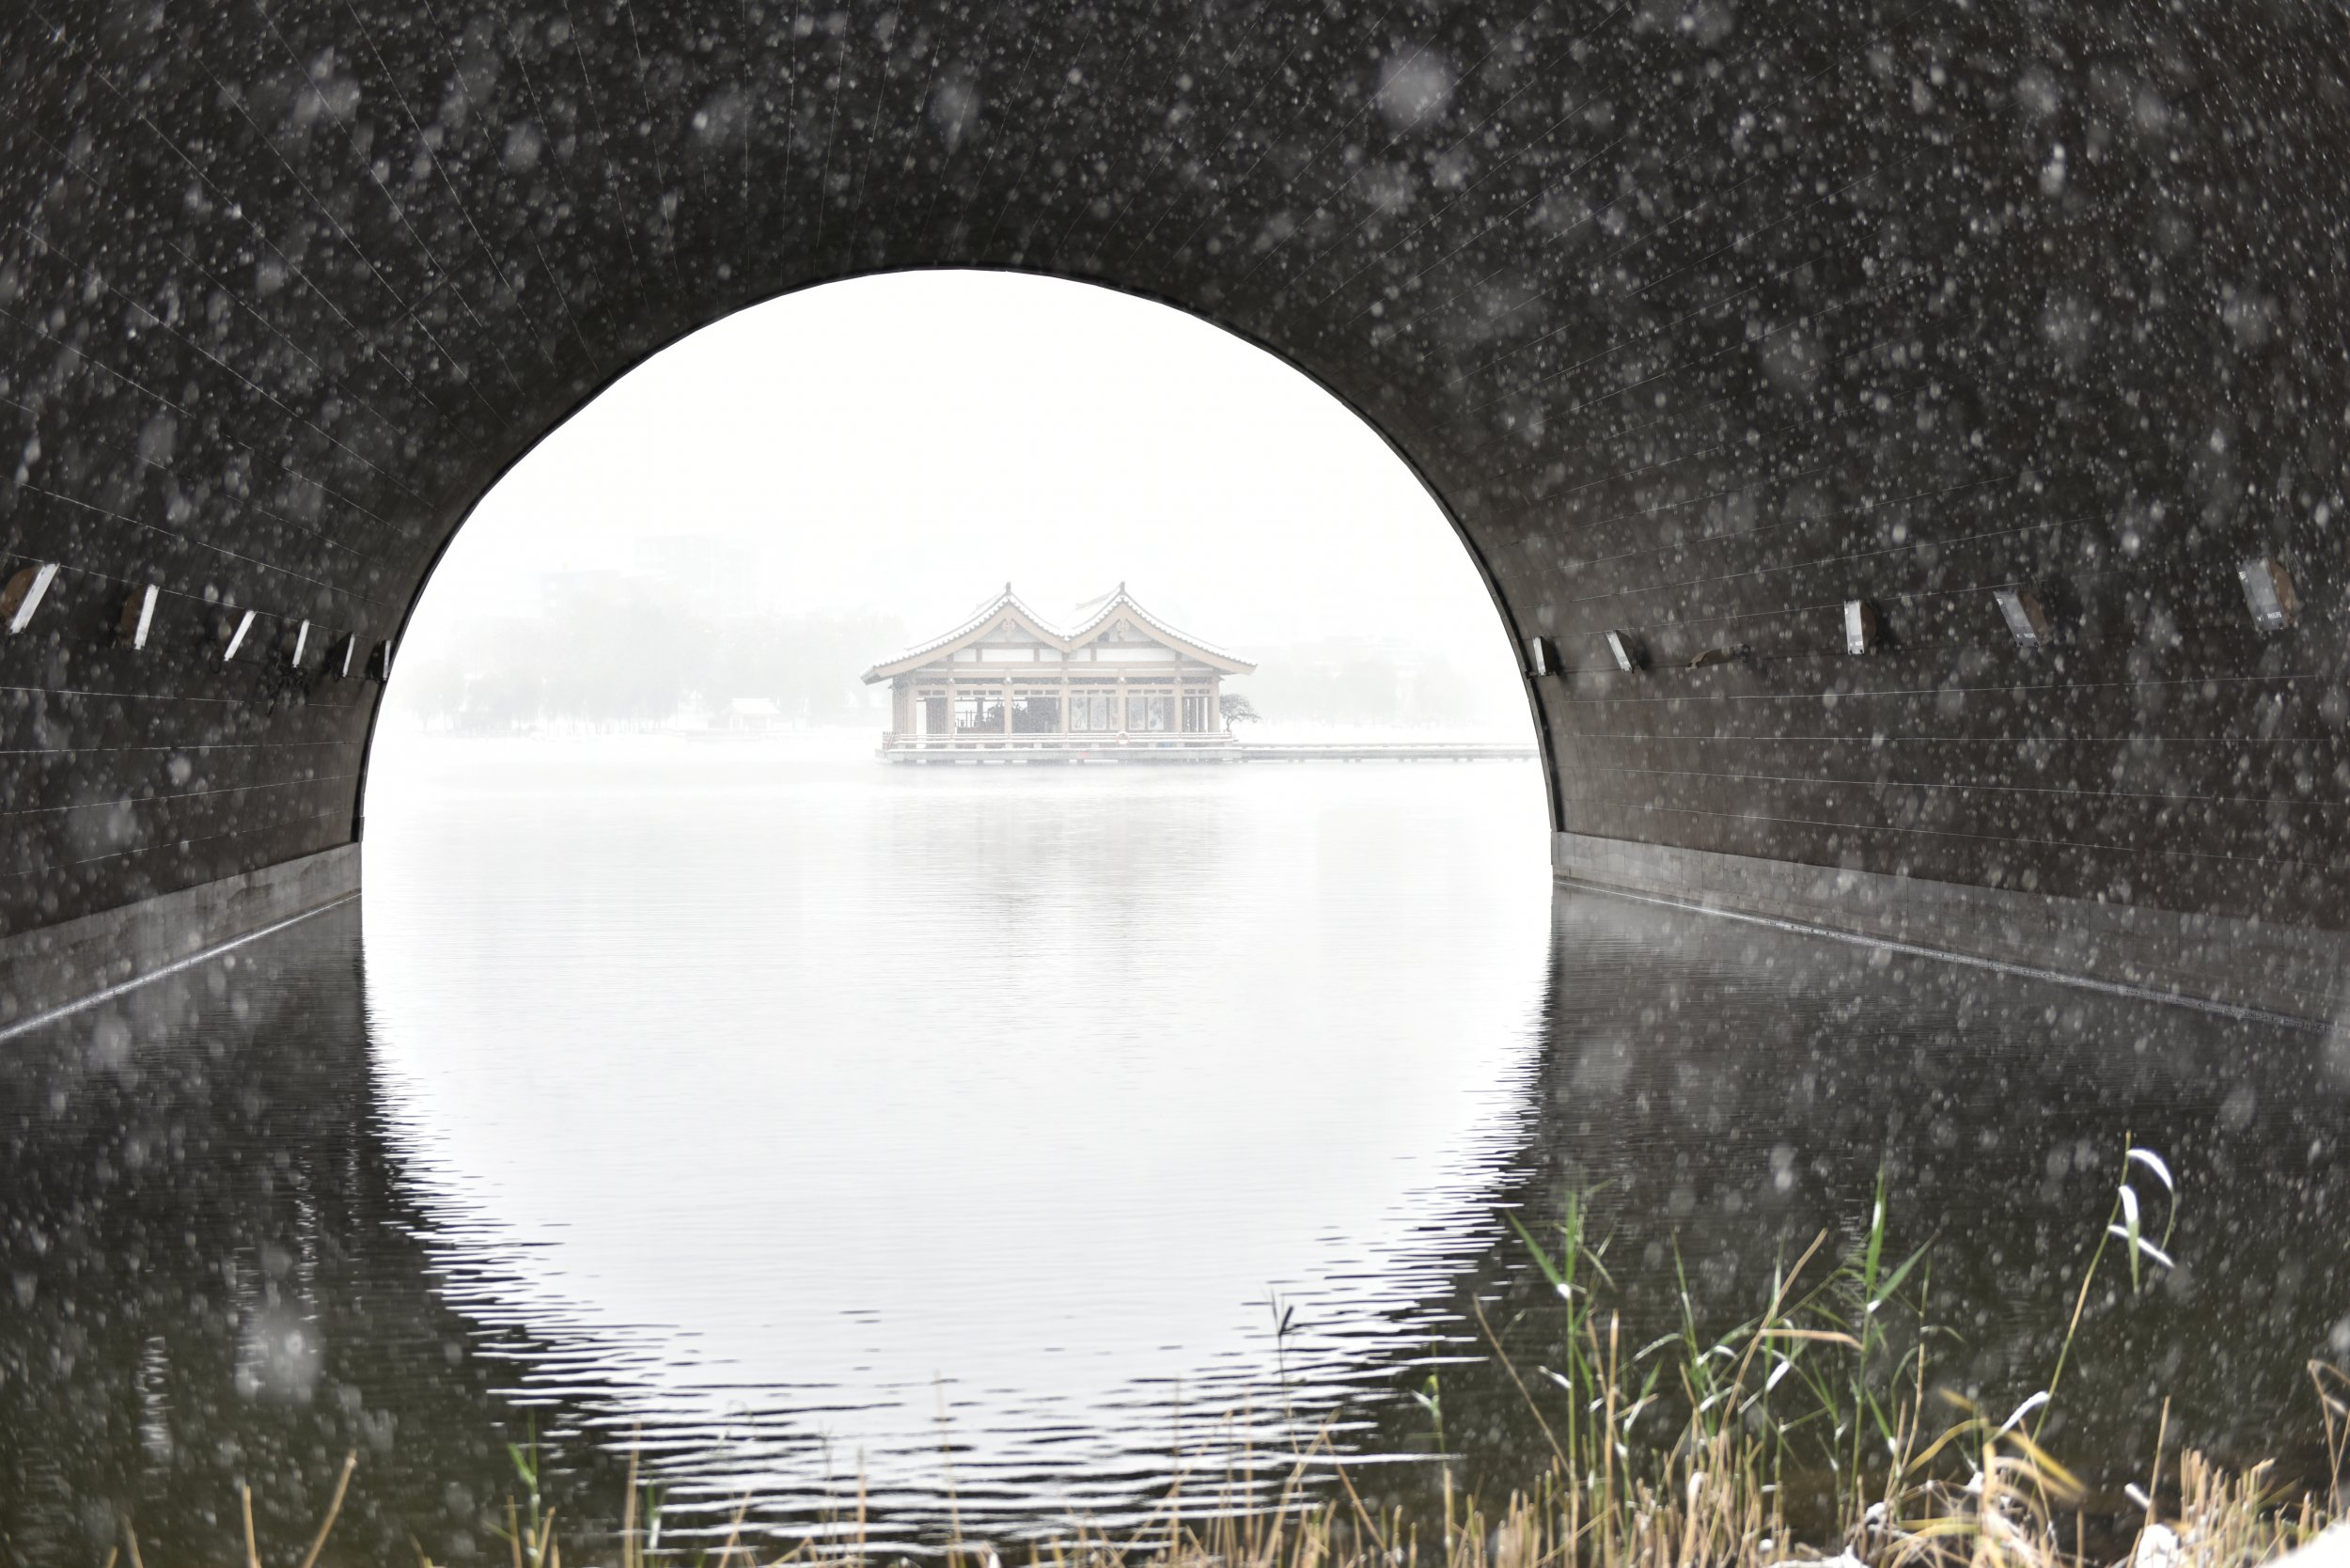 Pavilions on a lake in Xi'an, China